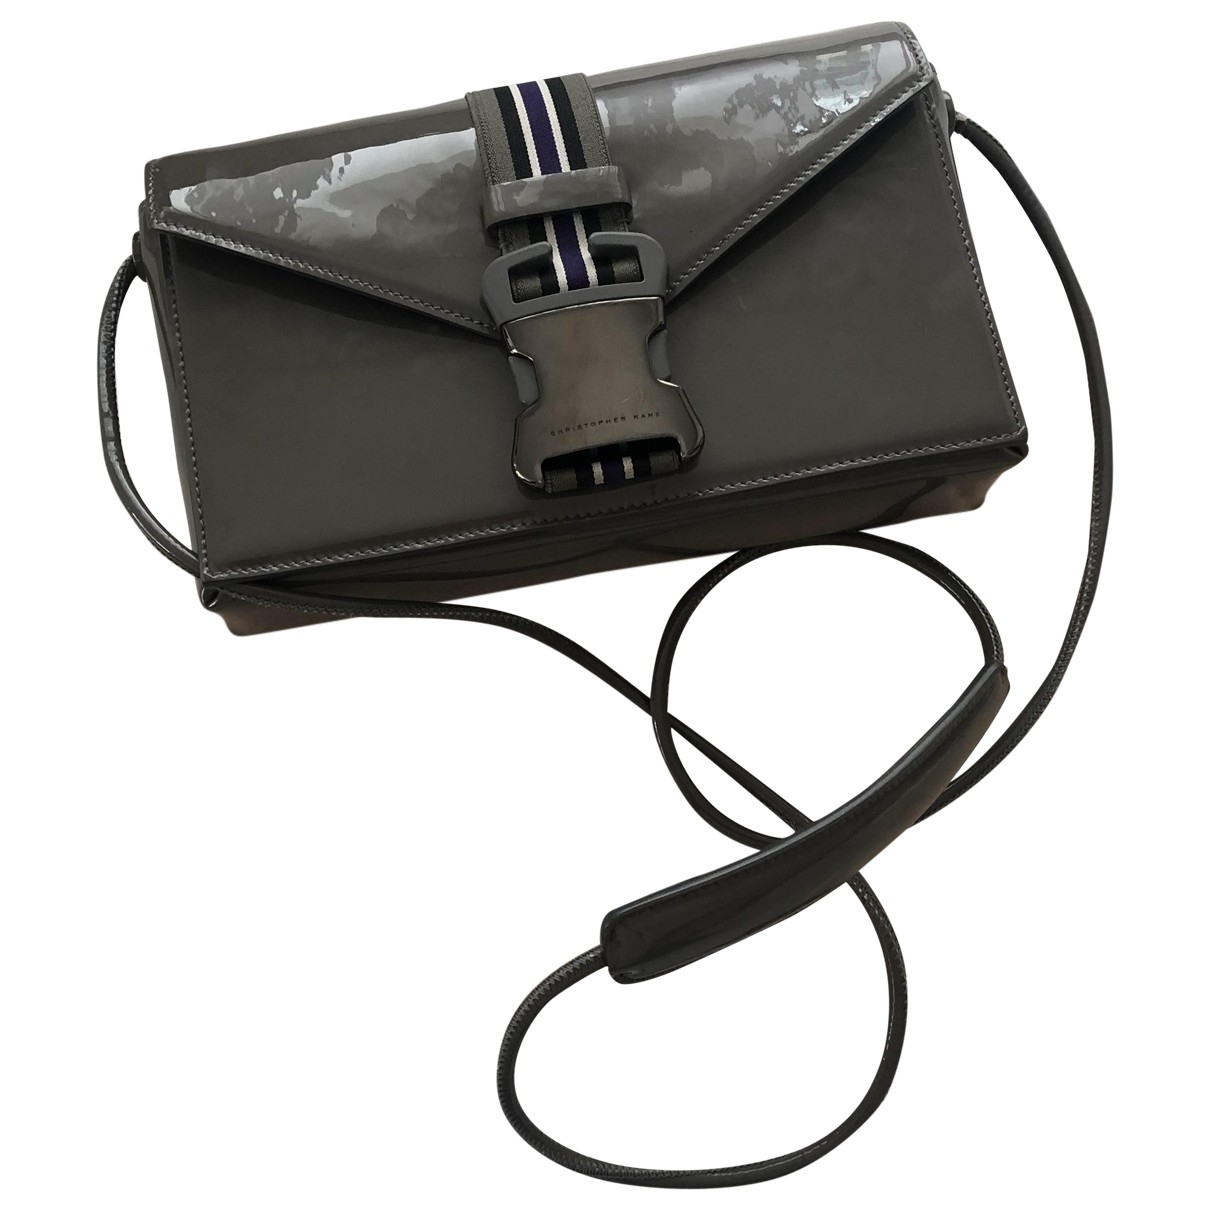 Christopher Kane \N Grey Patent leather handbag for Women \N